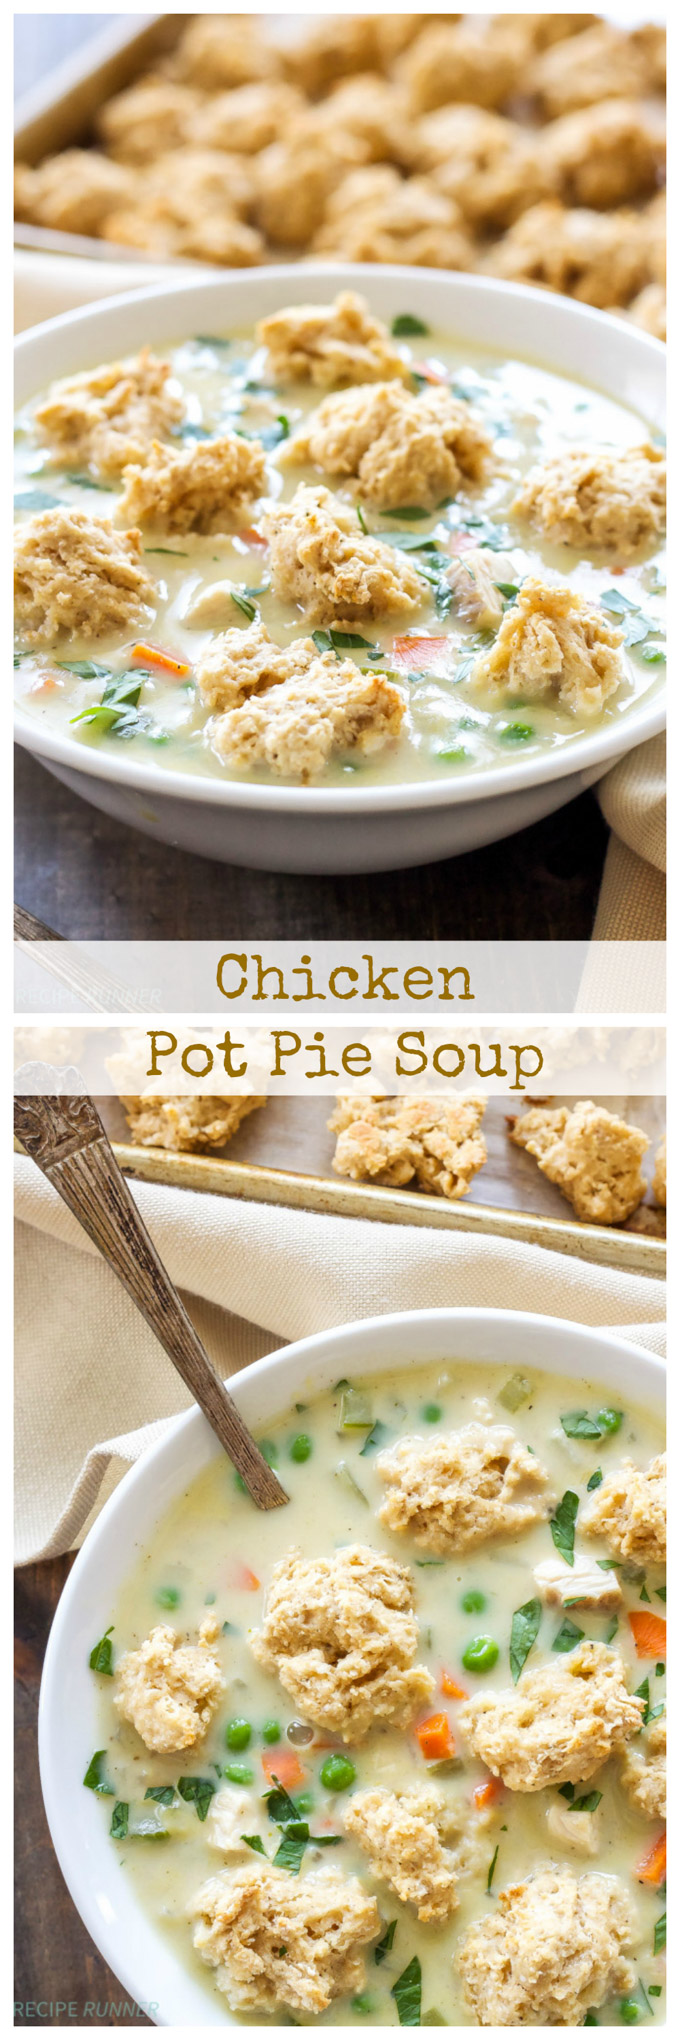 Chicken Pot Pie Soup with Biscuit Crumbles | A fun twist on traditional chicken pot pie is to turn it into a bowl of comforting soup!